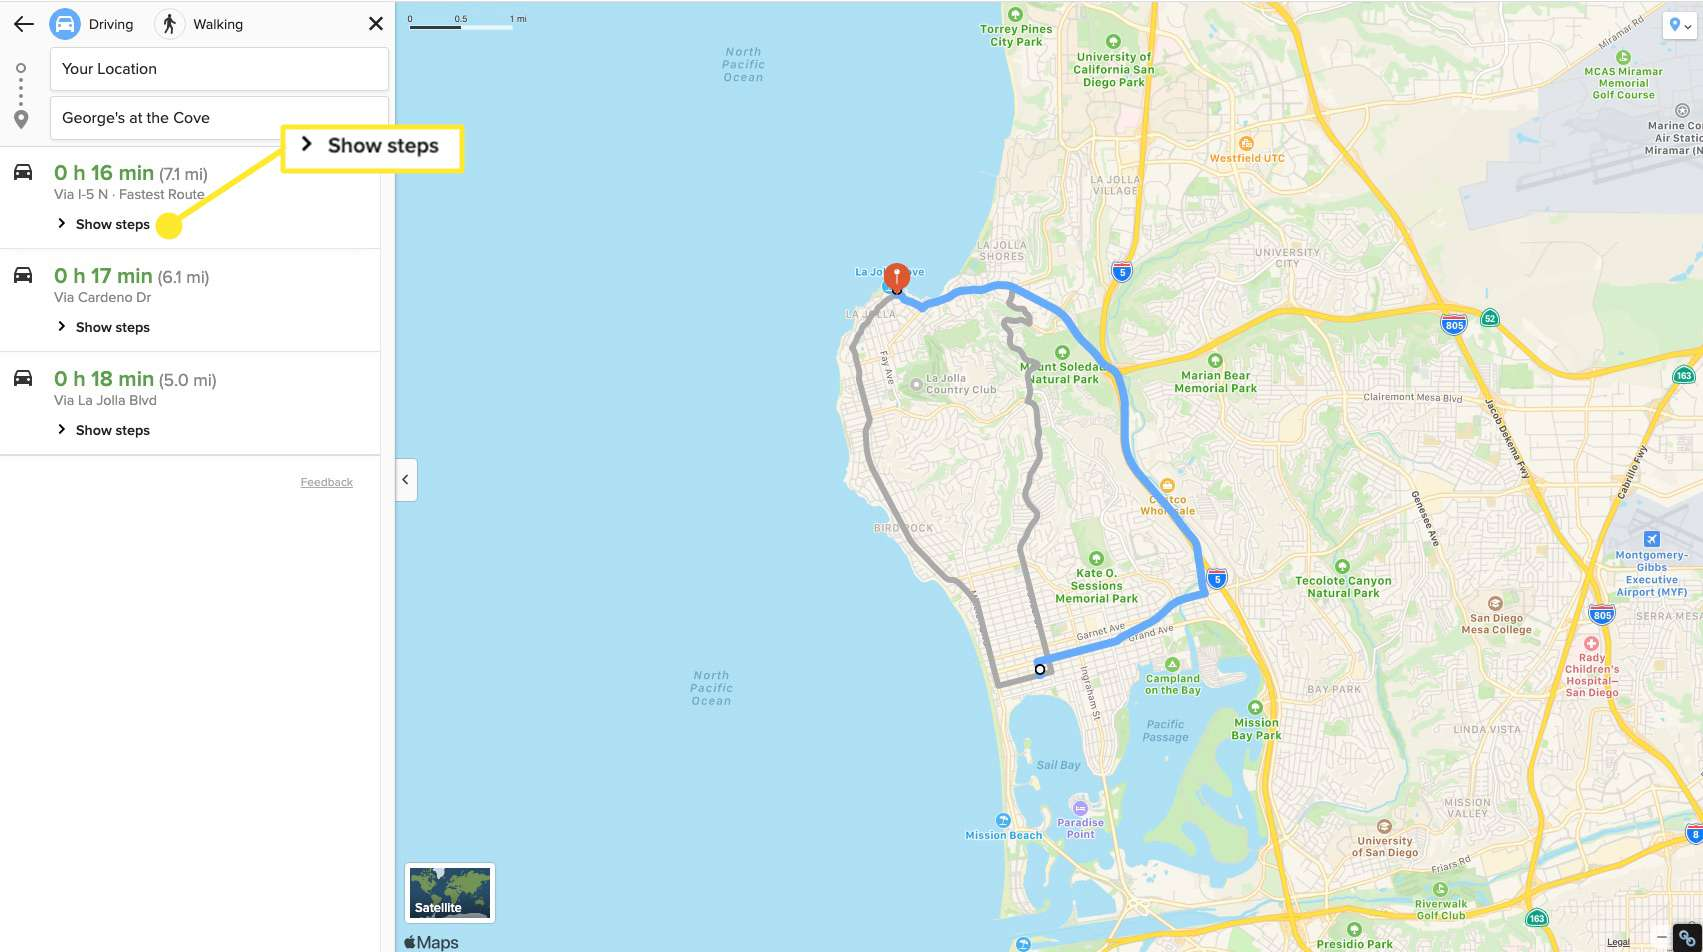 Select Show Steps to see your exact route